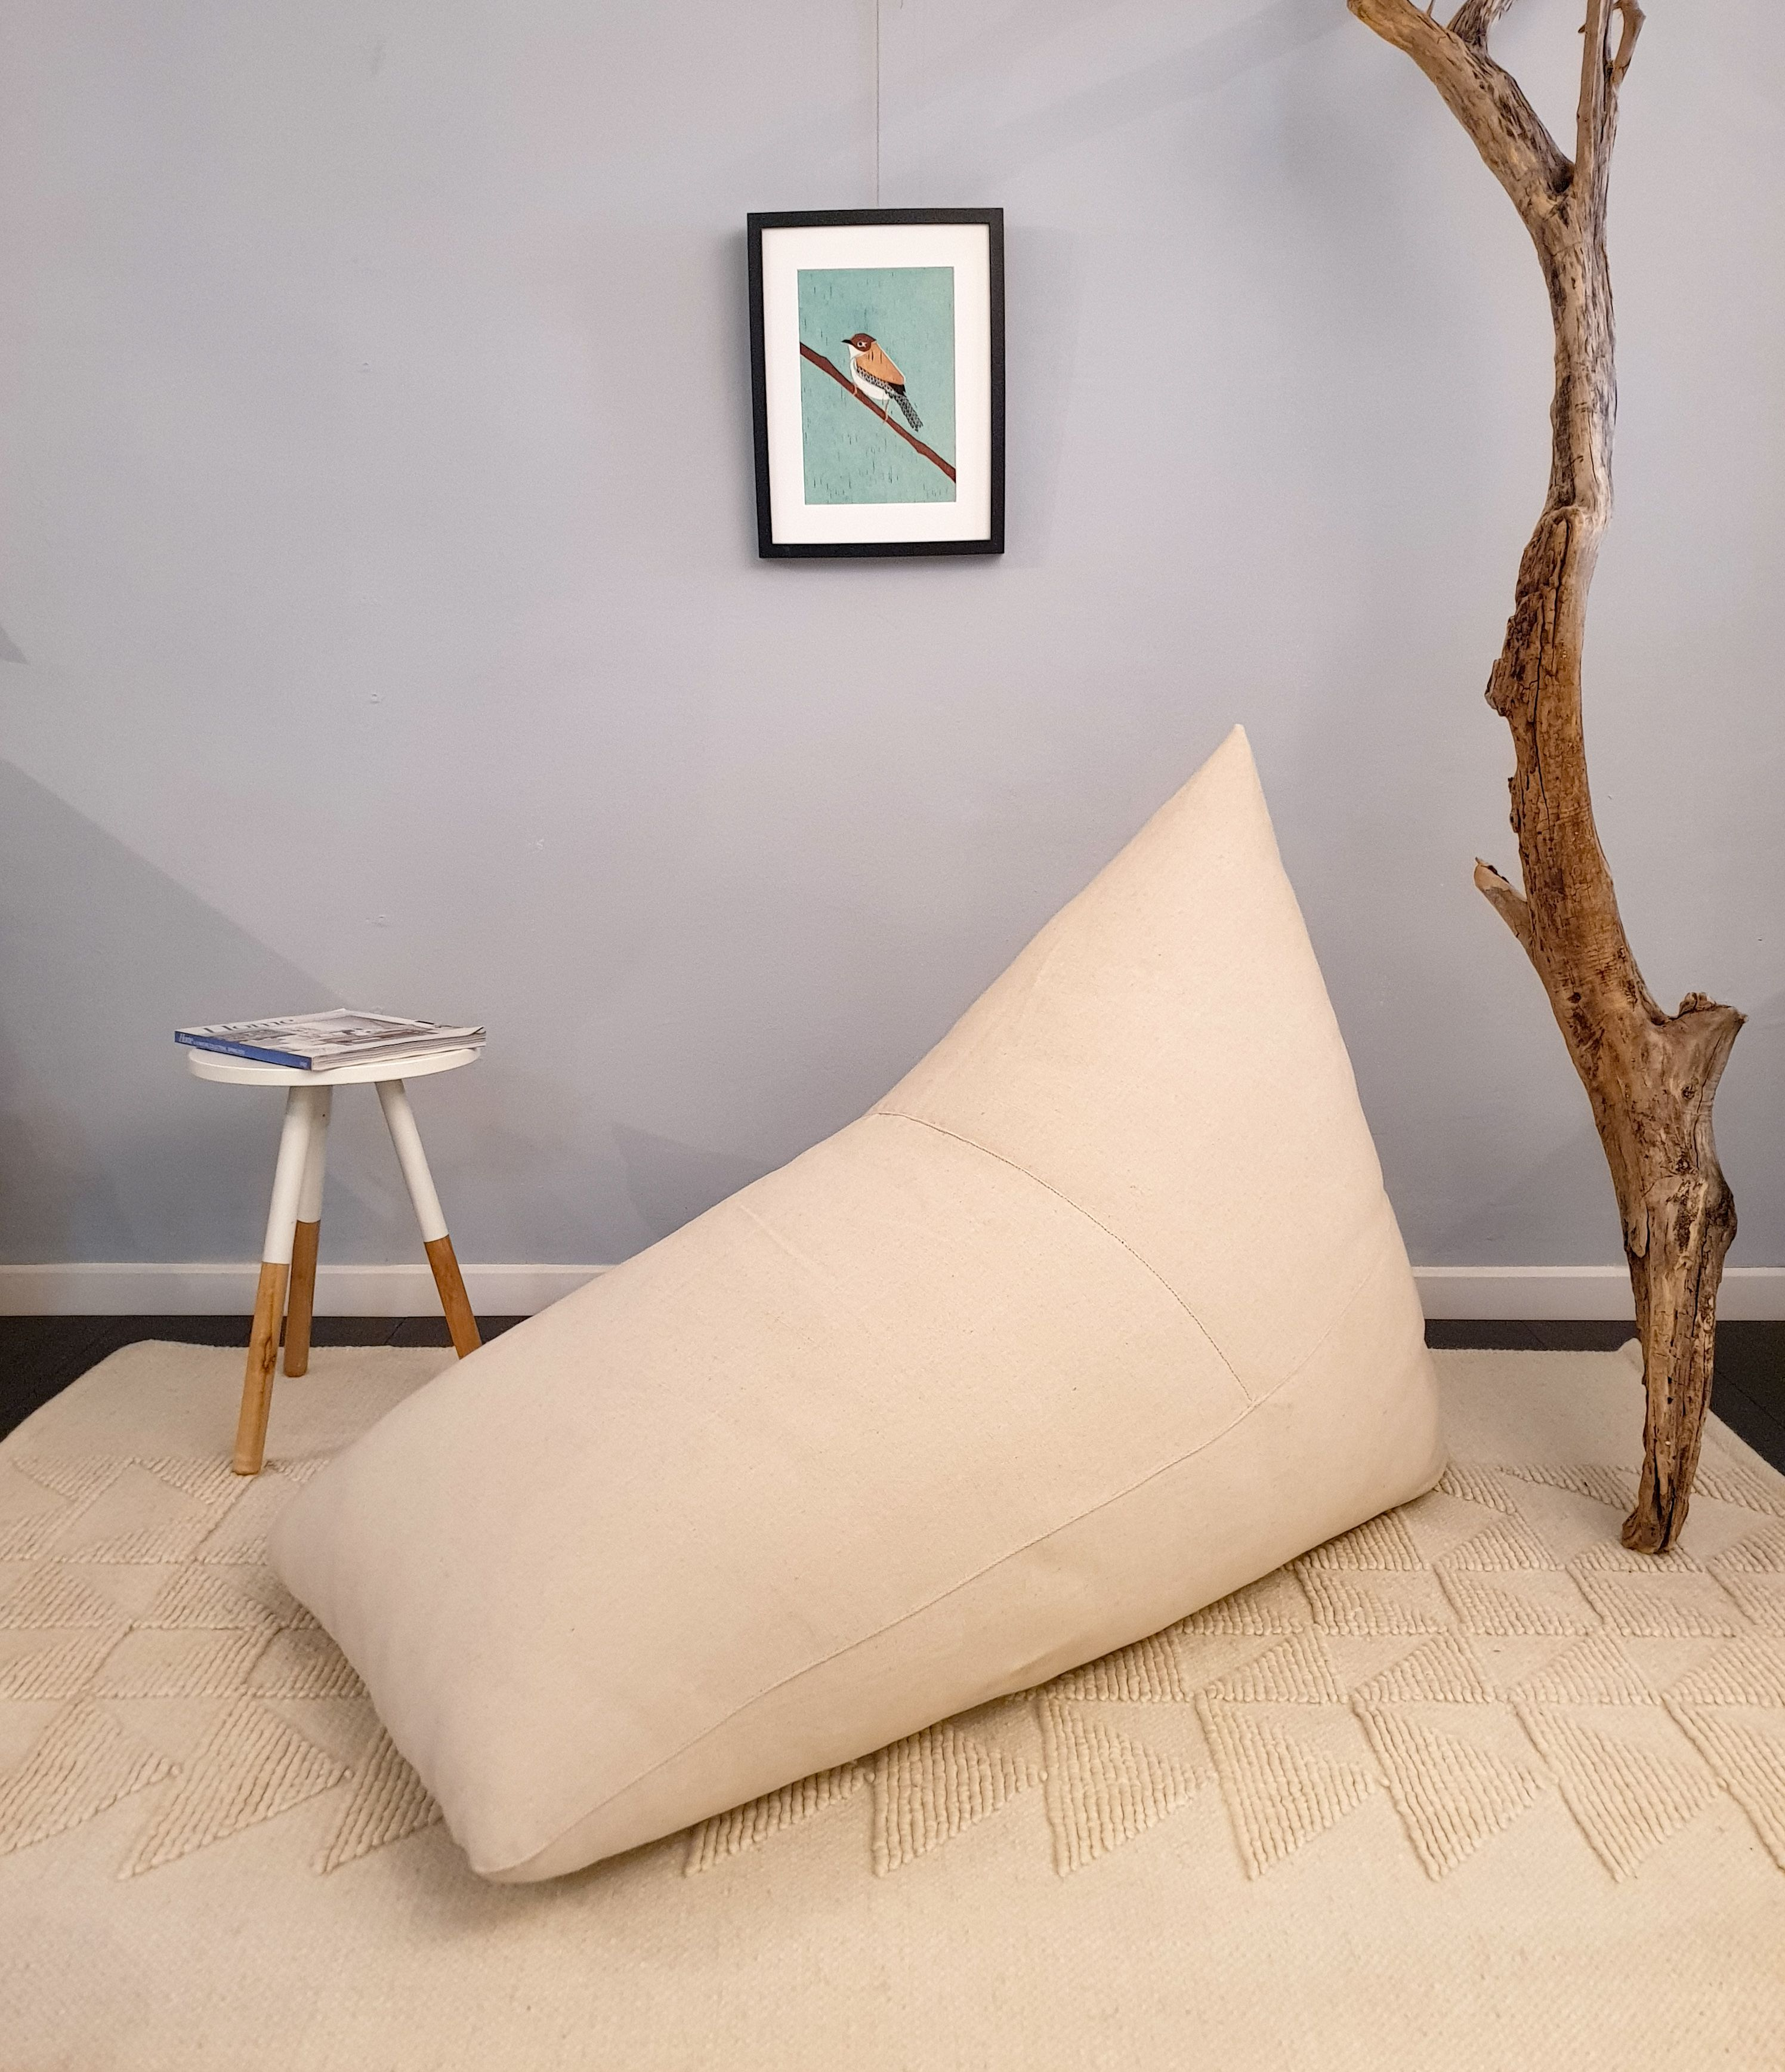 Groovy All Natural Wool Filled Bean Bag Chair Free Of Toxins And Machost Co Dining Chair Design Ideas Machostcouk